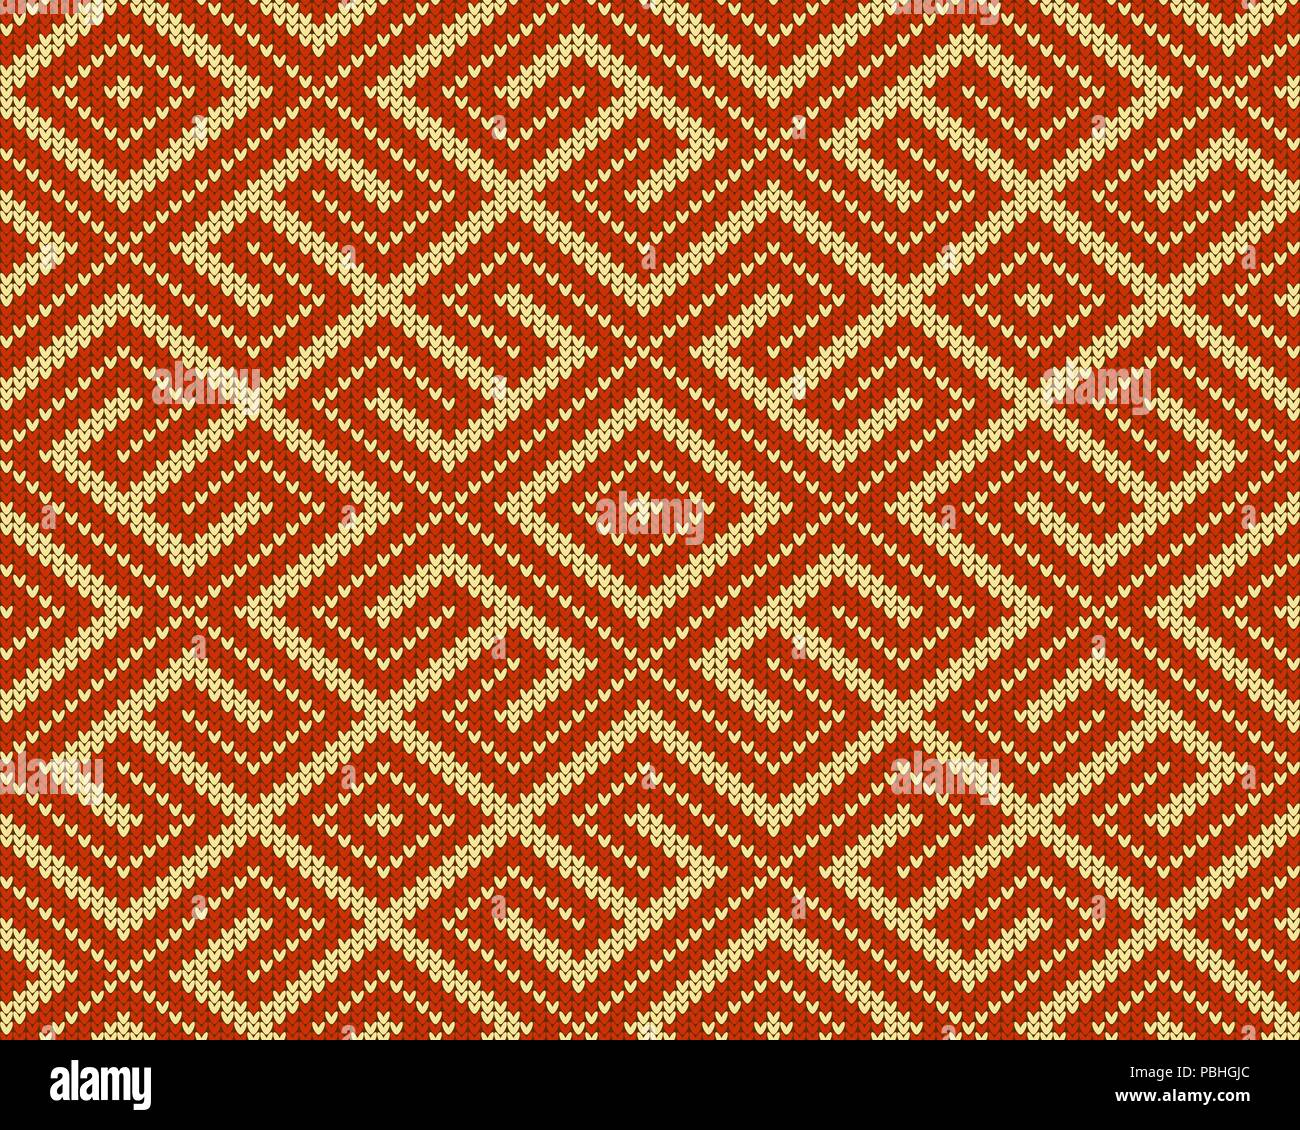 Seamless knitted Old Russian national woolen pattern. Design Orange Labyrinth - Stock Image